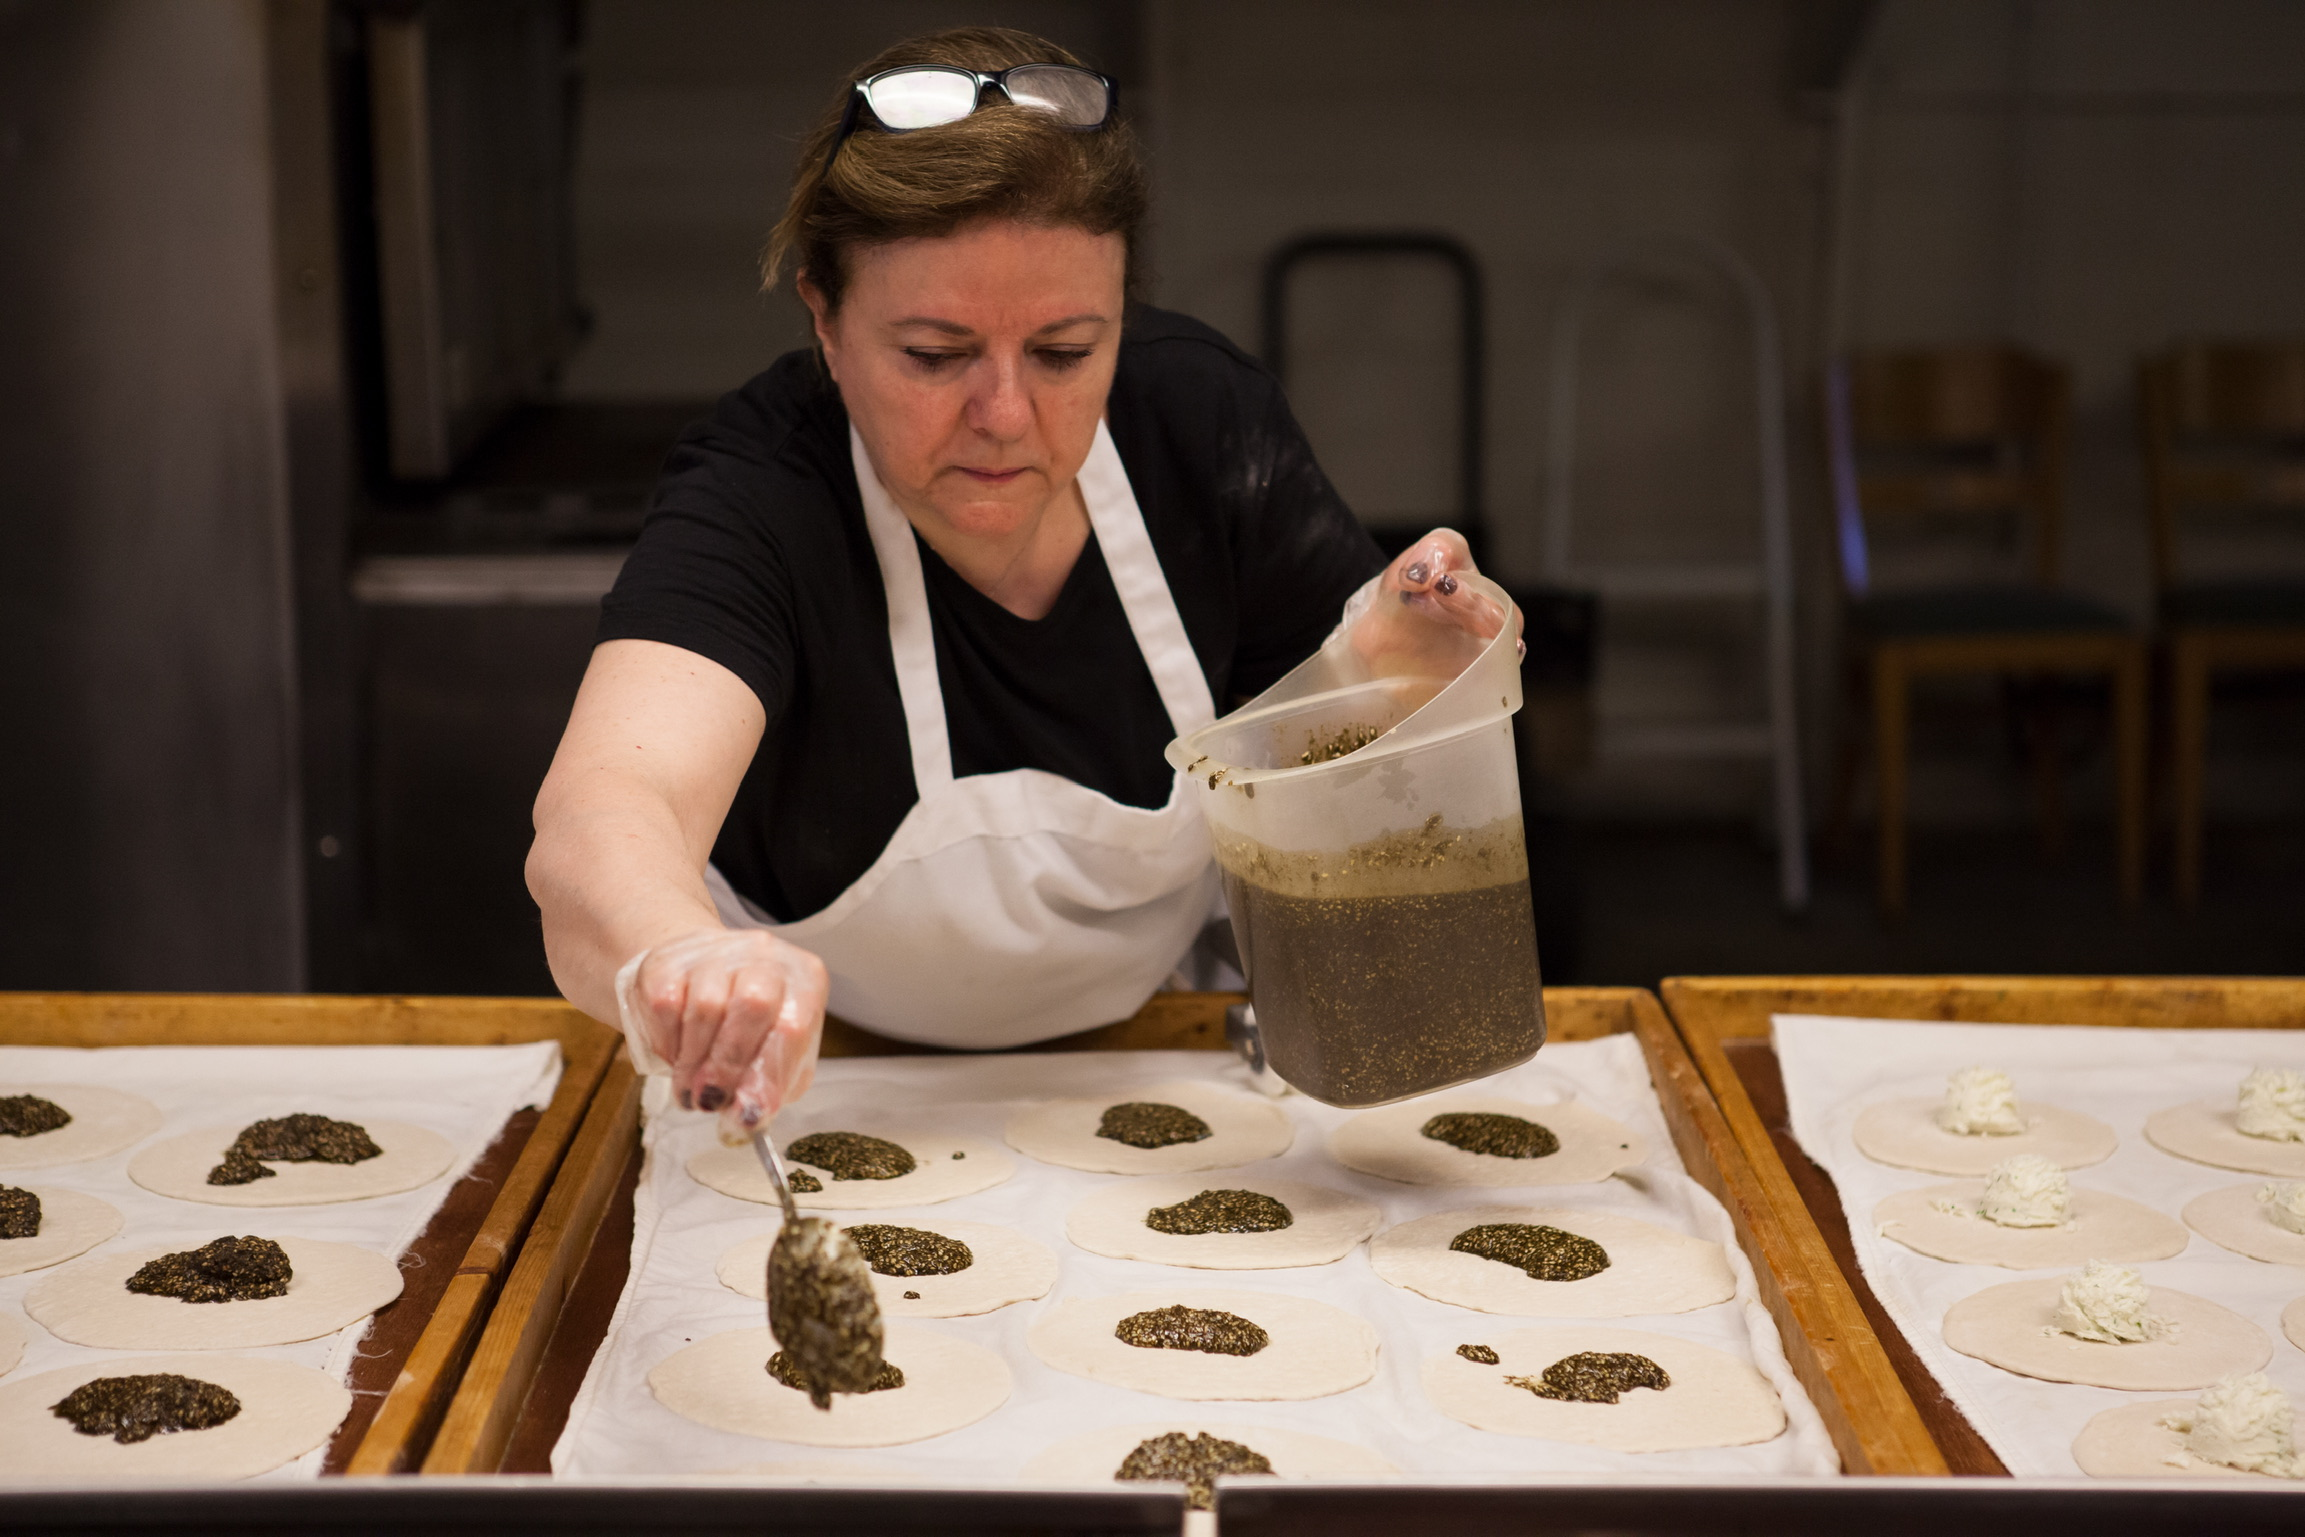 Norma Touma, owner of Sanabel Middle East Bakery, making fresh Zaatar pies.